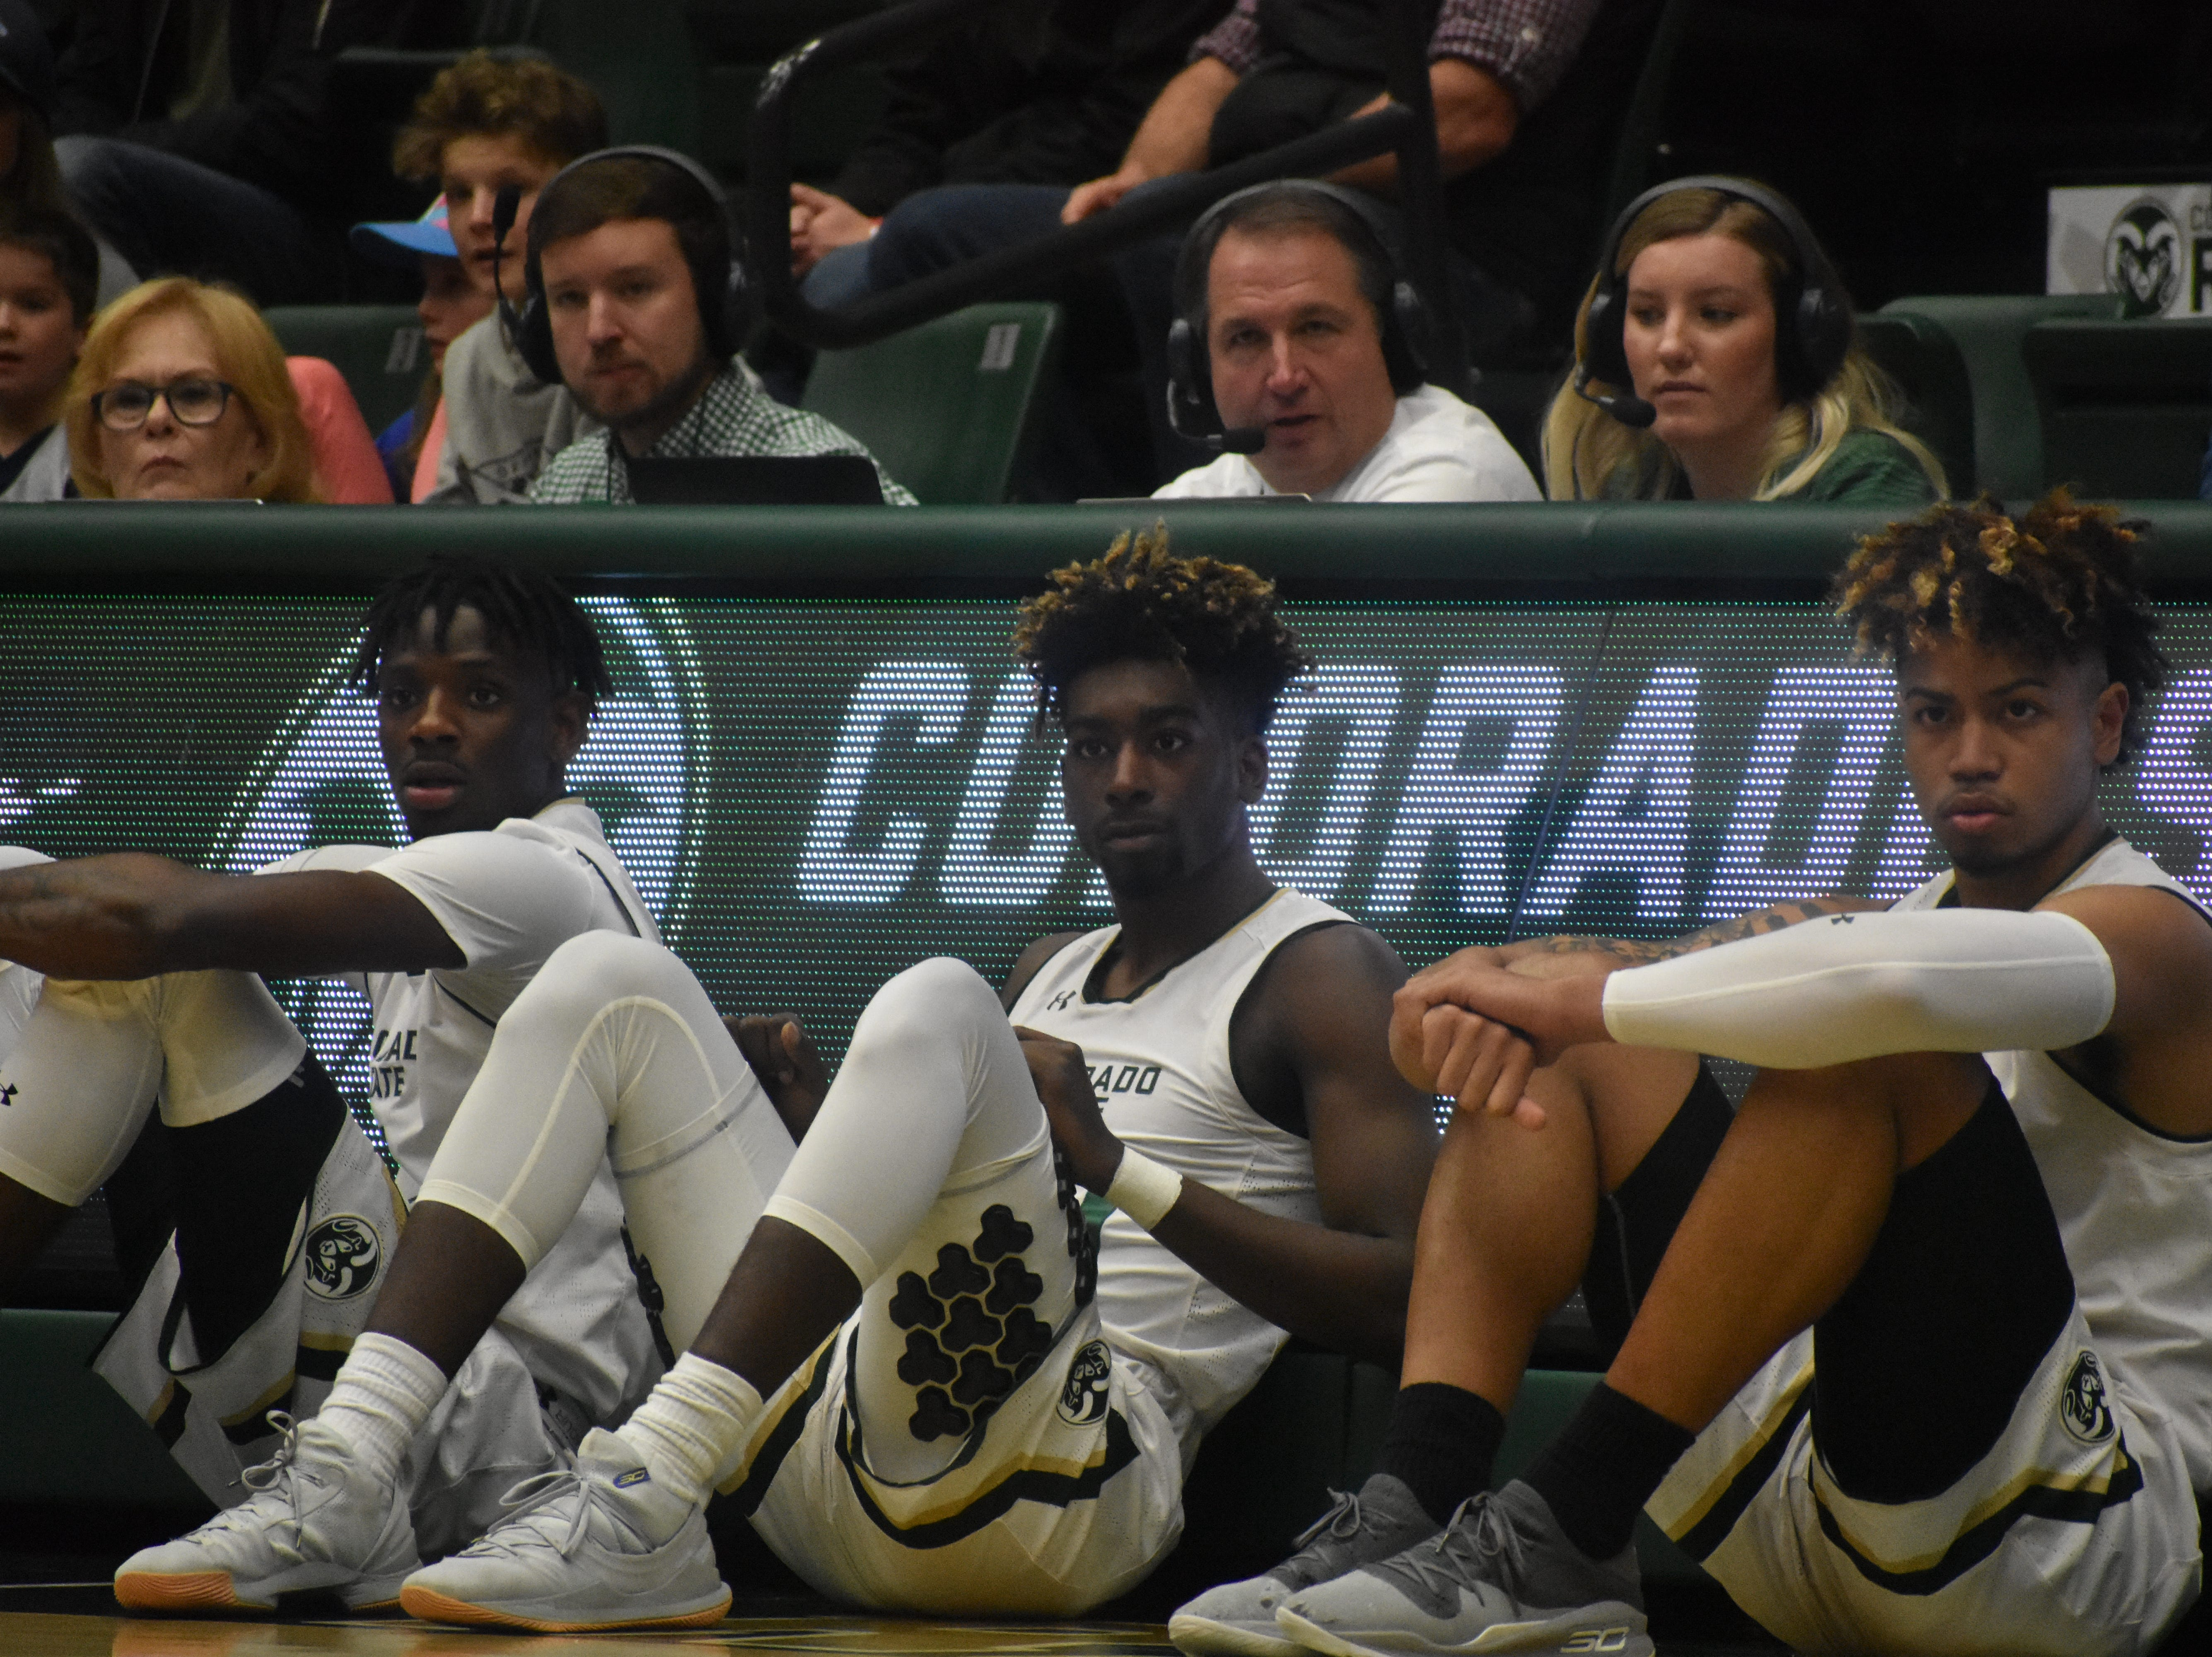 From left, CSU basketball players Zo Tyson, Kris Martin and Lorenzo Jenkins wait to sub into Sunday's game against South Dakota.